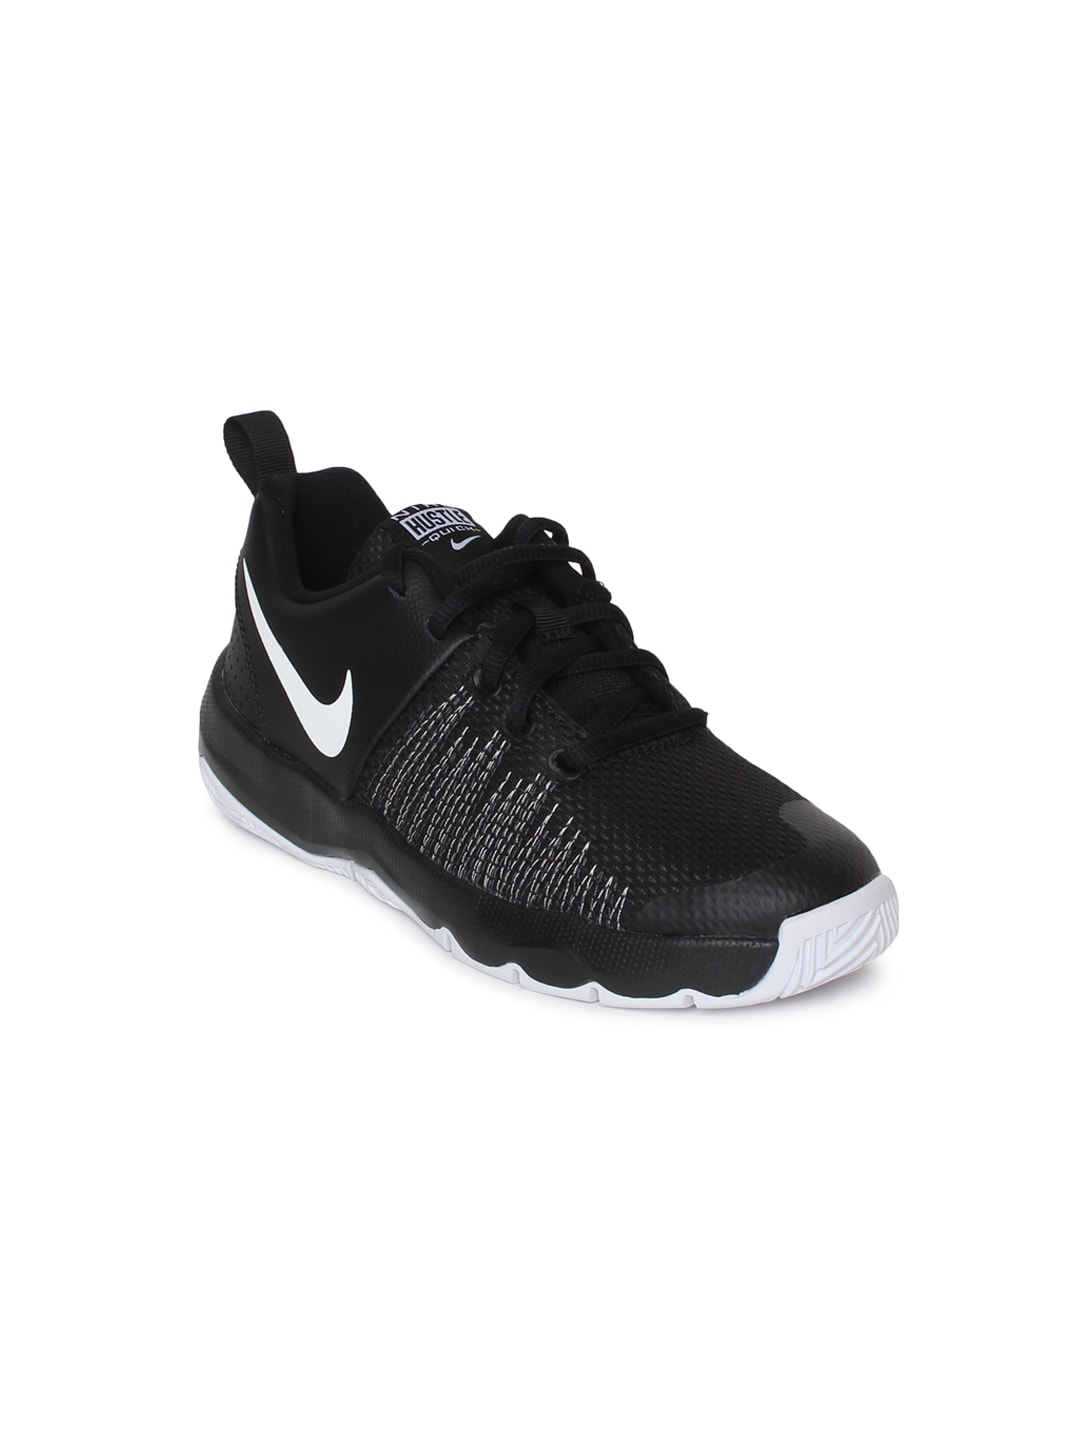 d2f6d0b05abd Nike Basketball Shoes